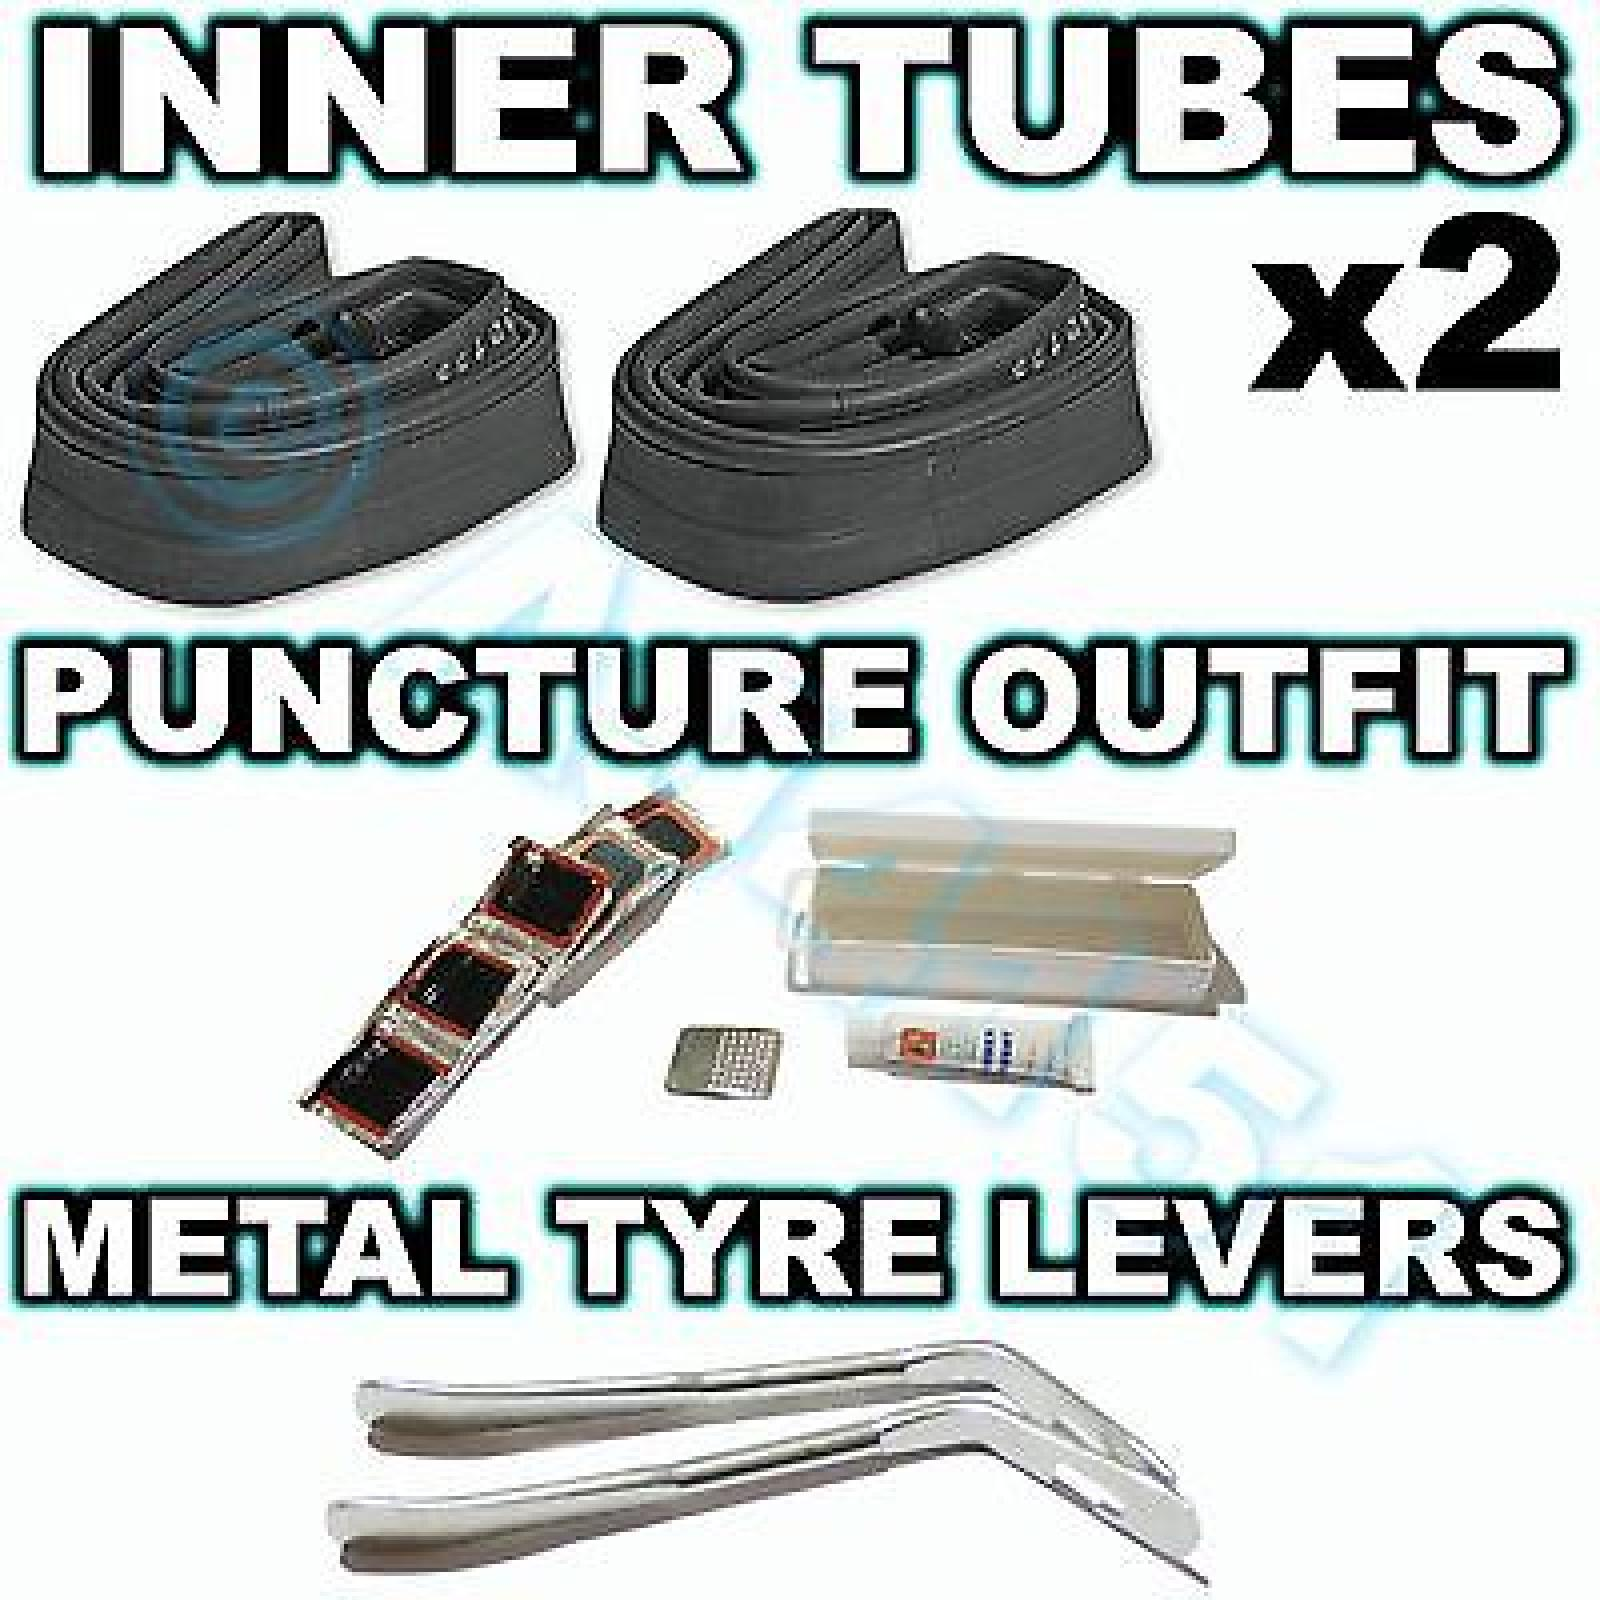 2 Inner tubes Puncture Outfit & Tyre Levers 10 11 12 14 16 18 20 24 26 700c ALL